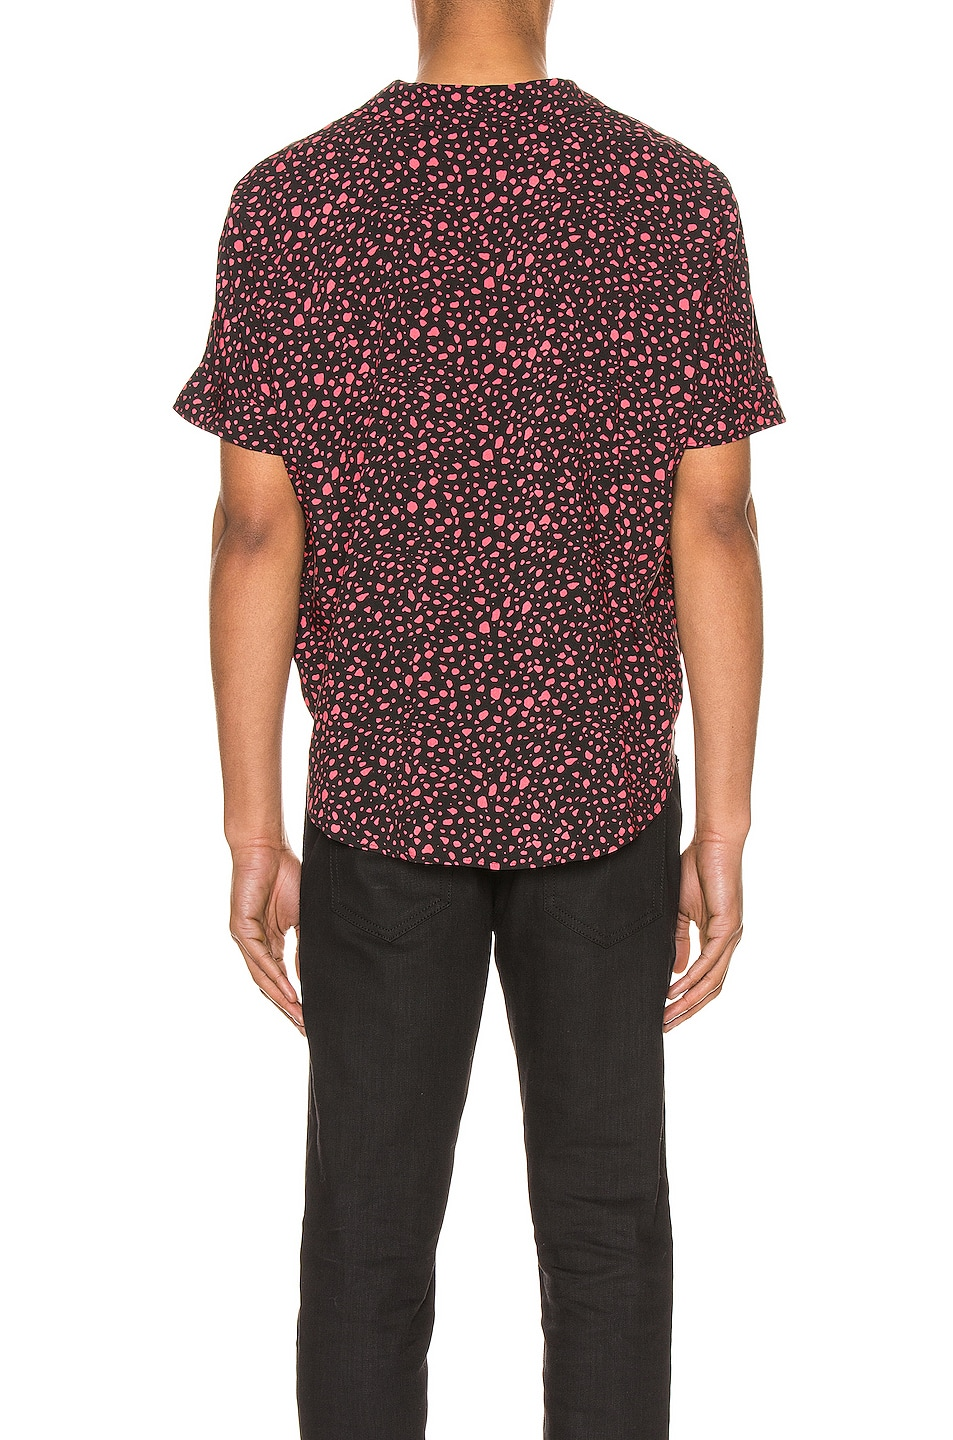 Image 3 of Saint Laurent Short Sleeve Shirt in Black & Fuchsia